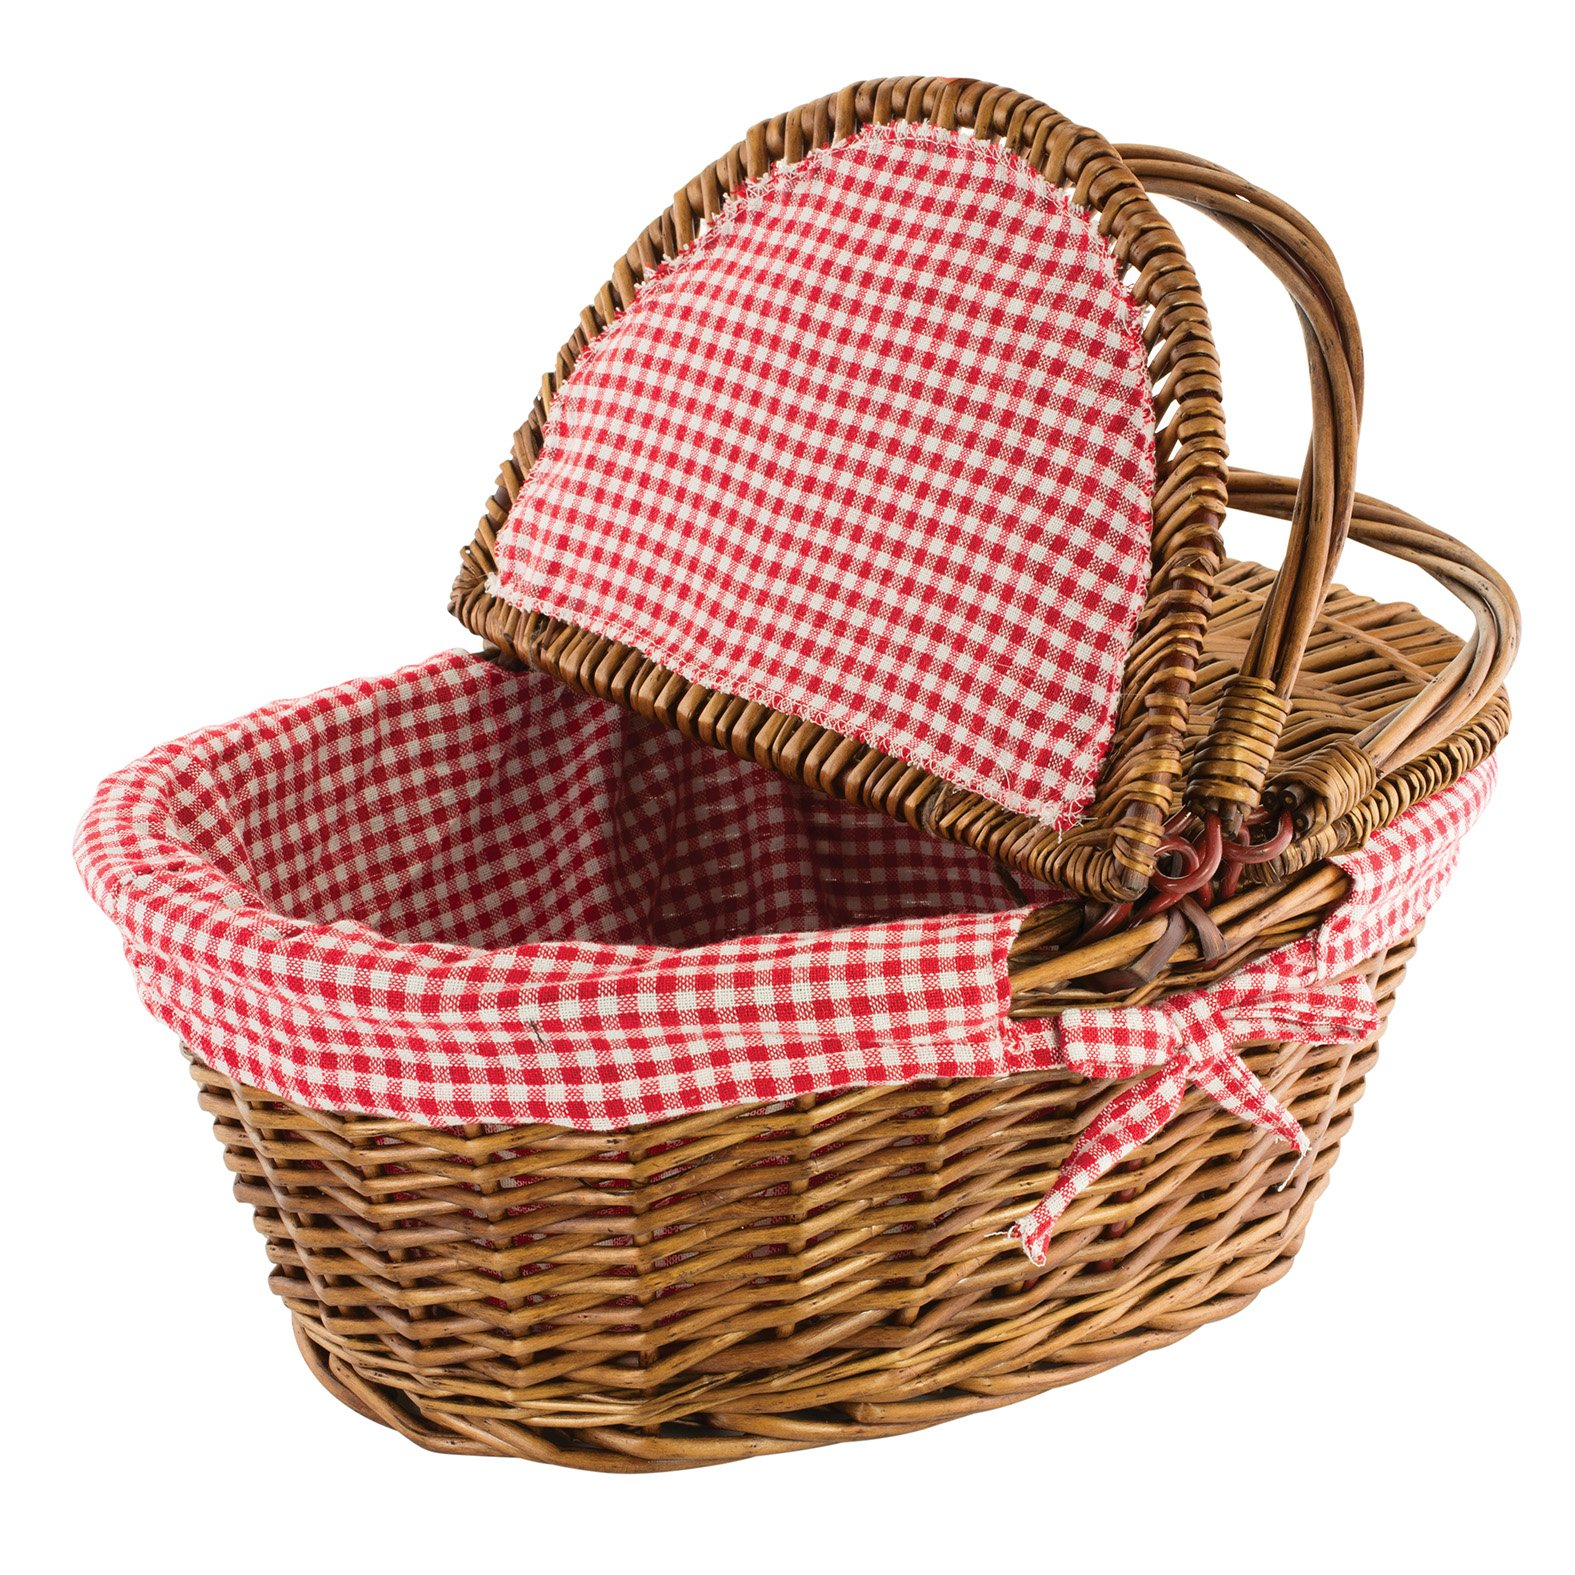 Kovot Country Style Wicker Picnic Basket with Folding Handles & Liners | Measures 16.5'' x 13.5'' x 7.5'' | for Picnics, Parties and BBQs by Kovot